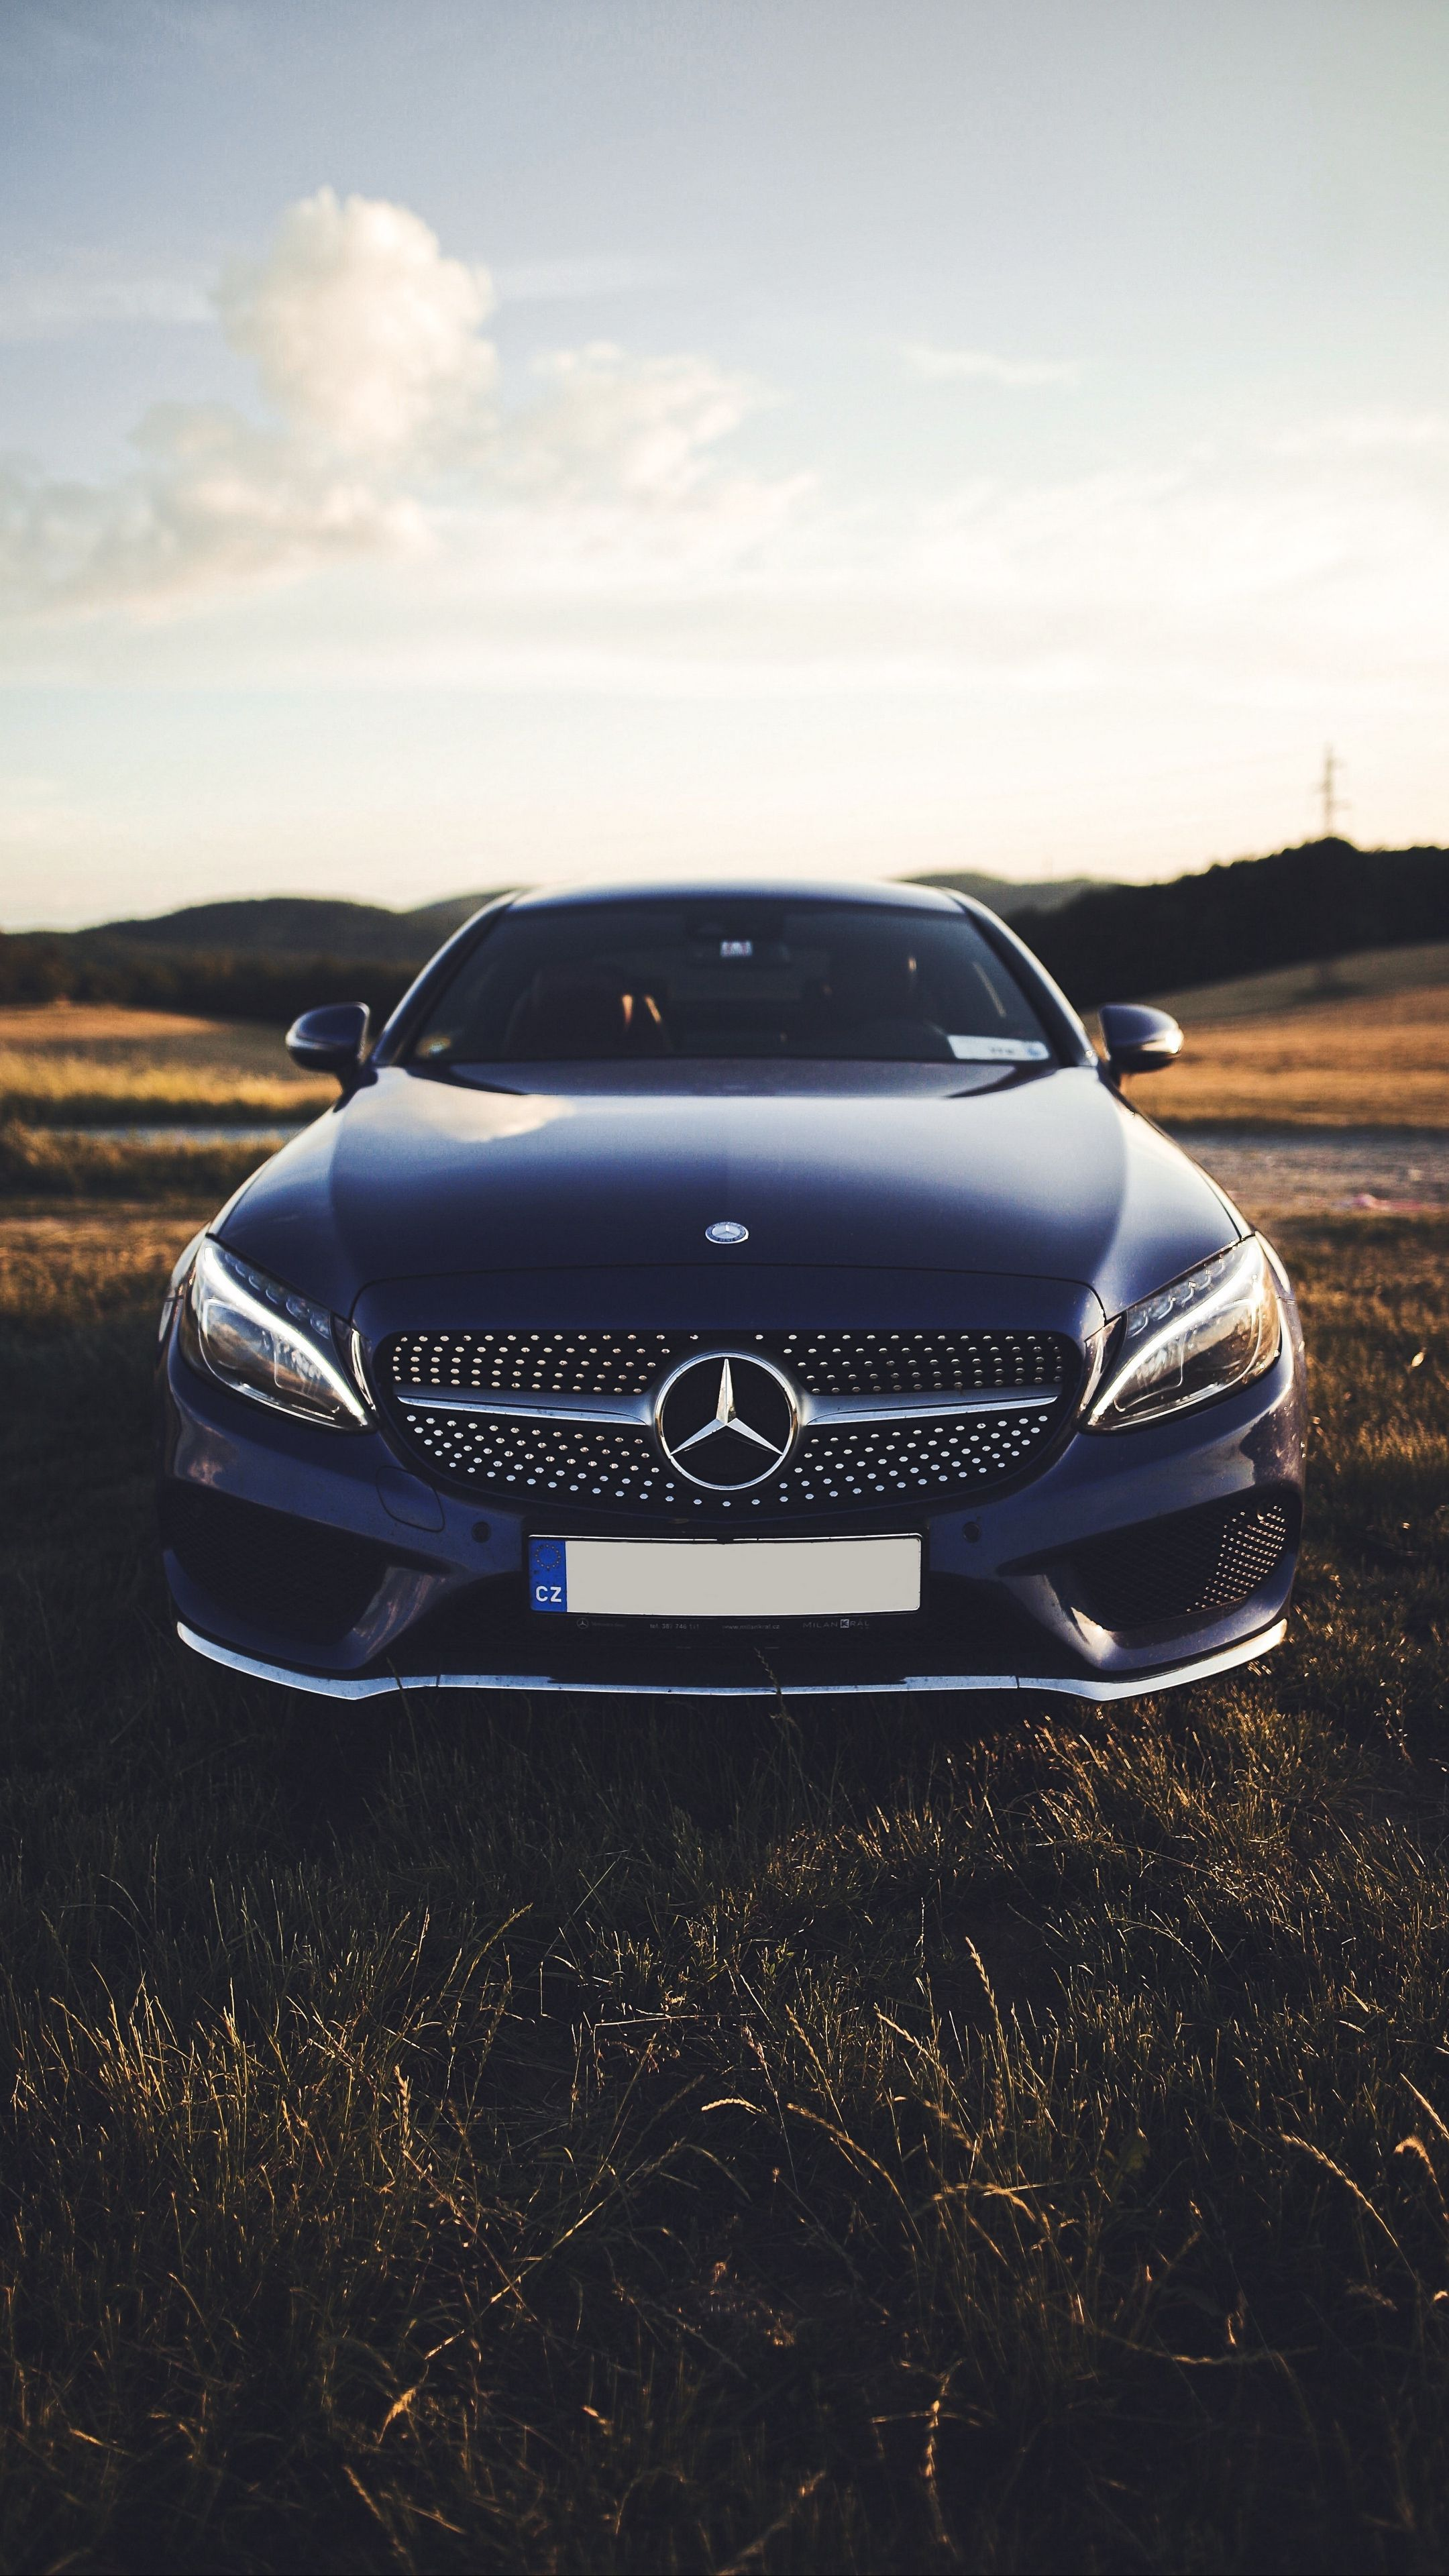 The Most Luxury Cars In The World With Best Photos Of Cars Mercedes Benz Cls Mercedes Car Benz Car